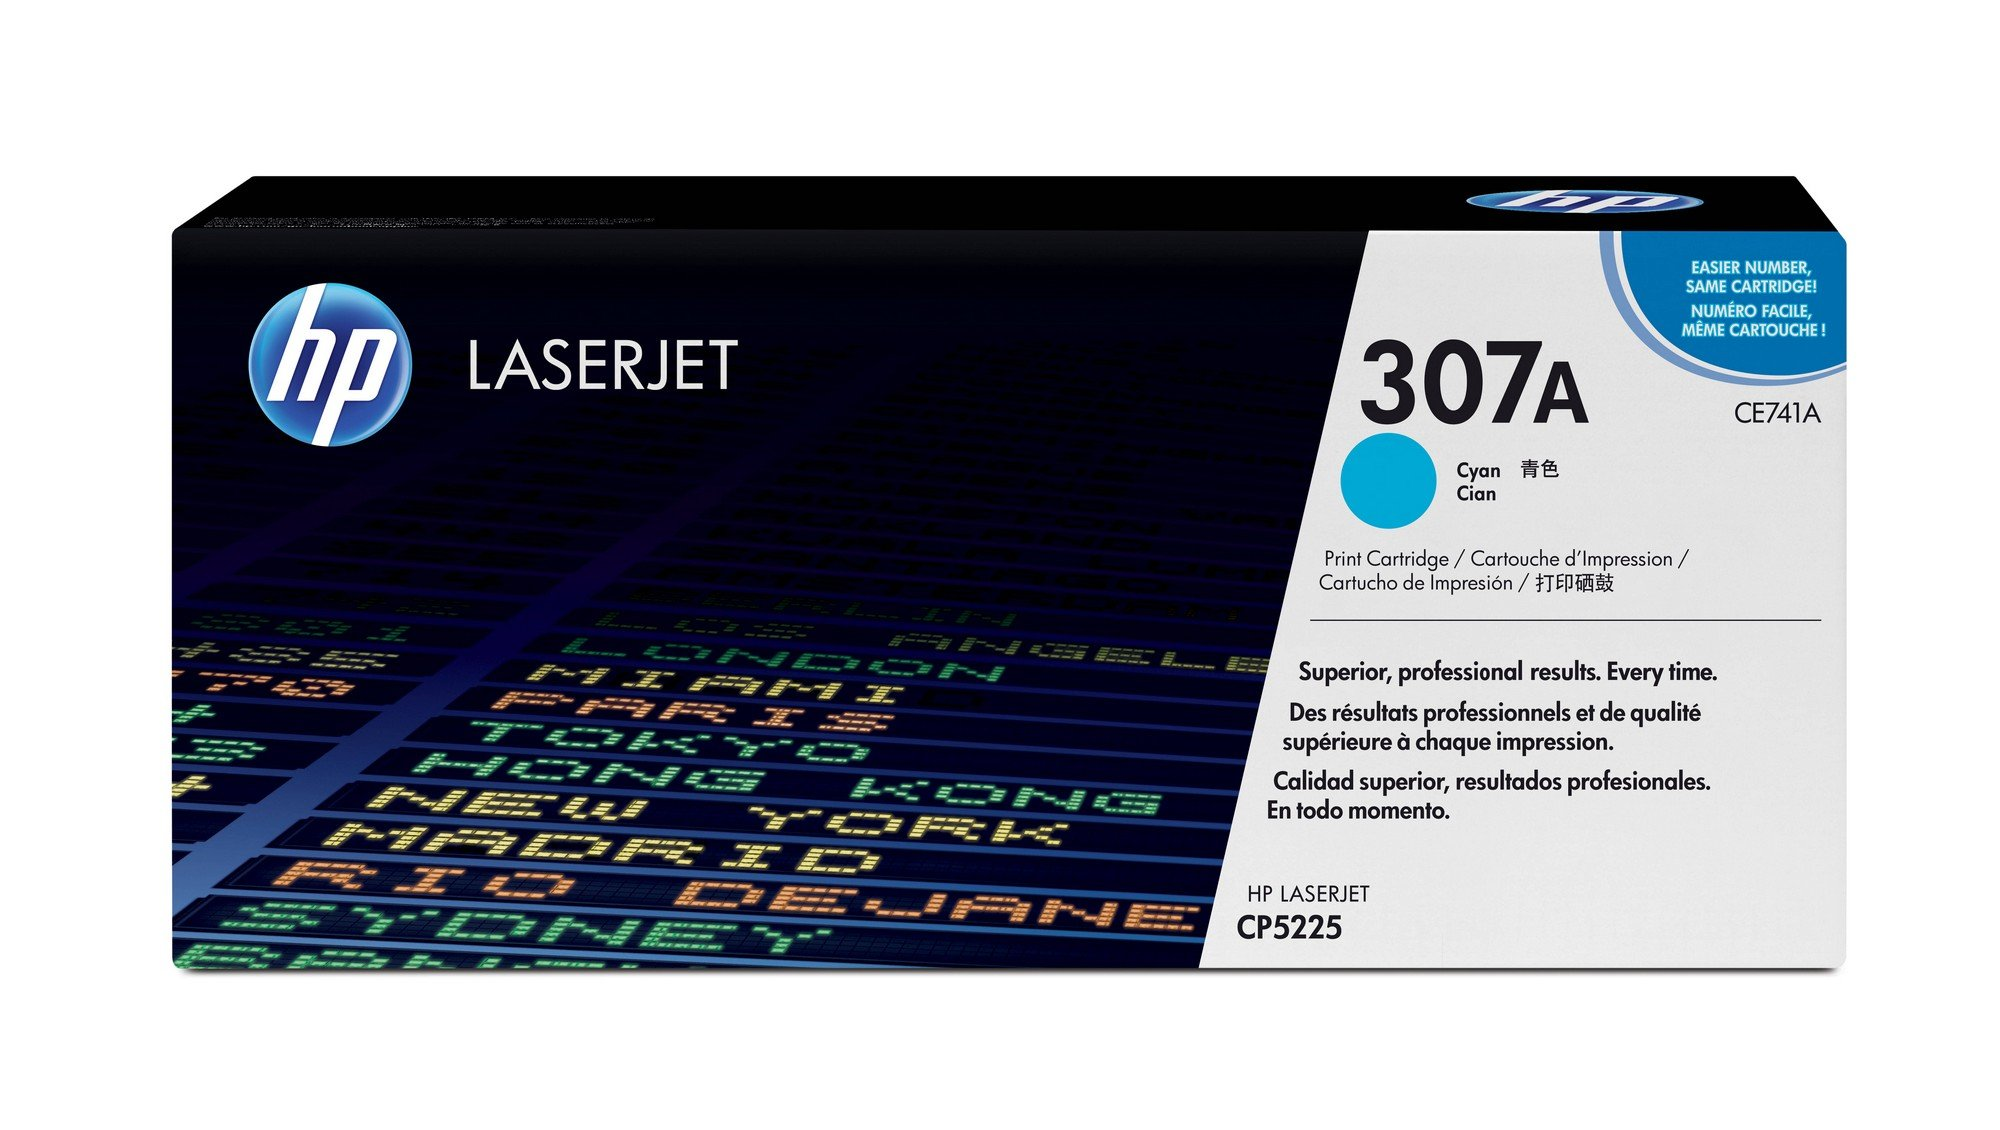 HP 307A (CE741A) Cyan Original Toner Cartridge